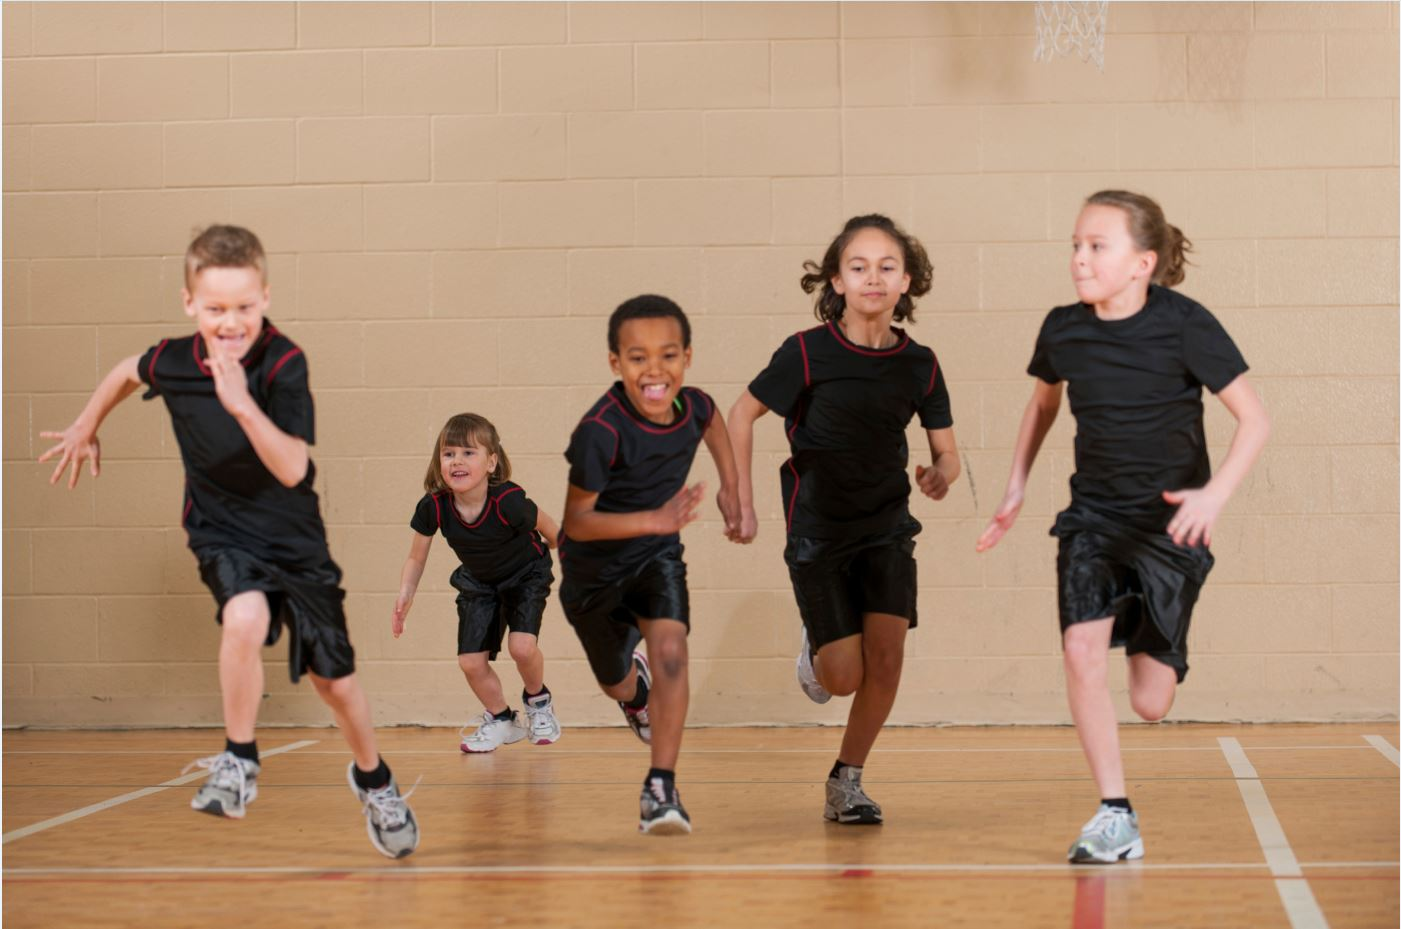 Slight Increase in Kid's Physical Activity Reduces Health Risks